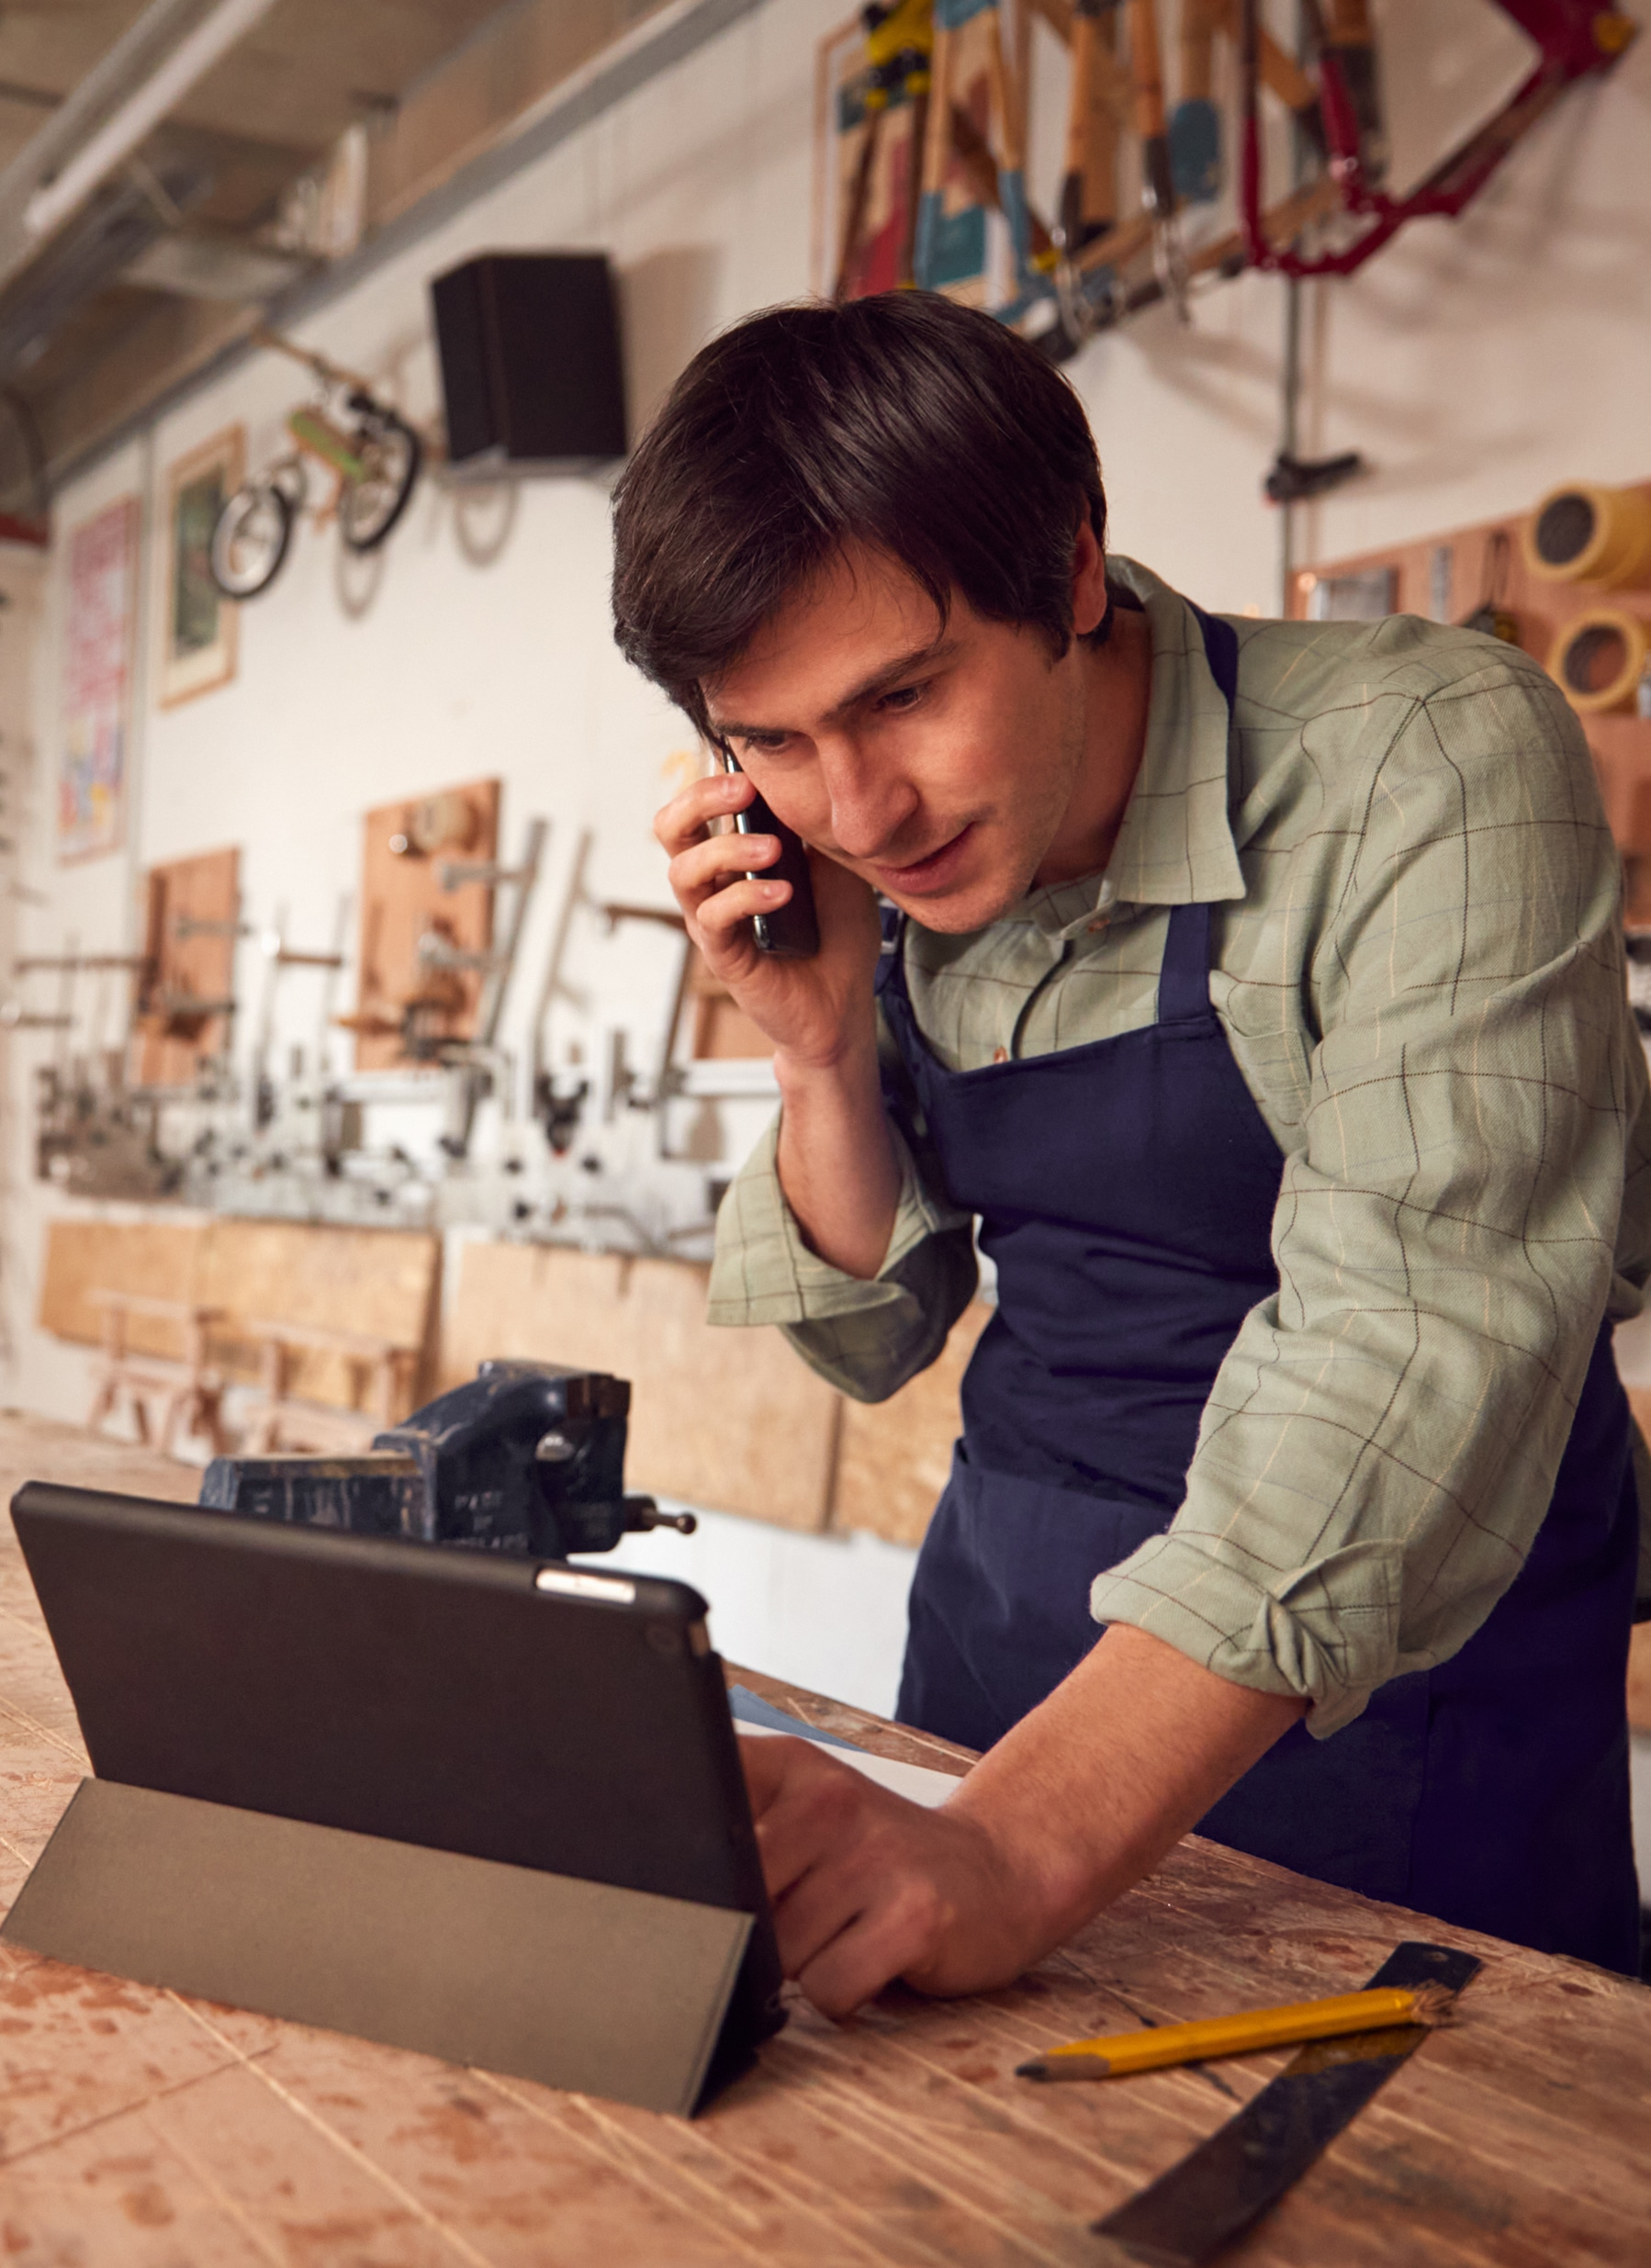 Male Business Owner In Workshop Using Digital Tablet And Making Call On Mobile Phone